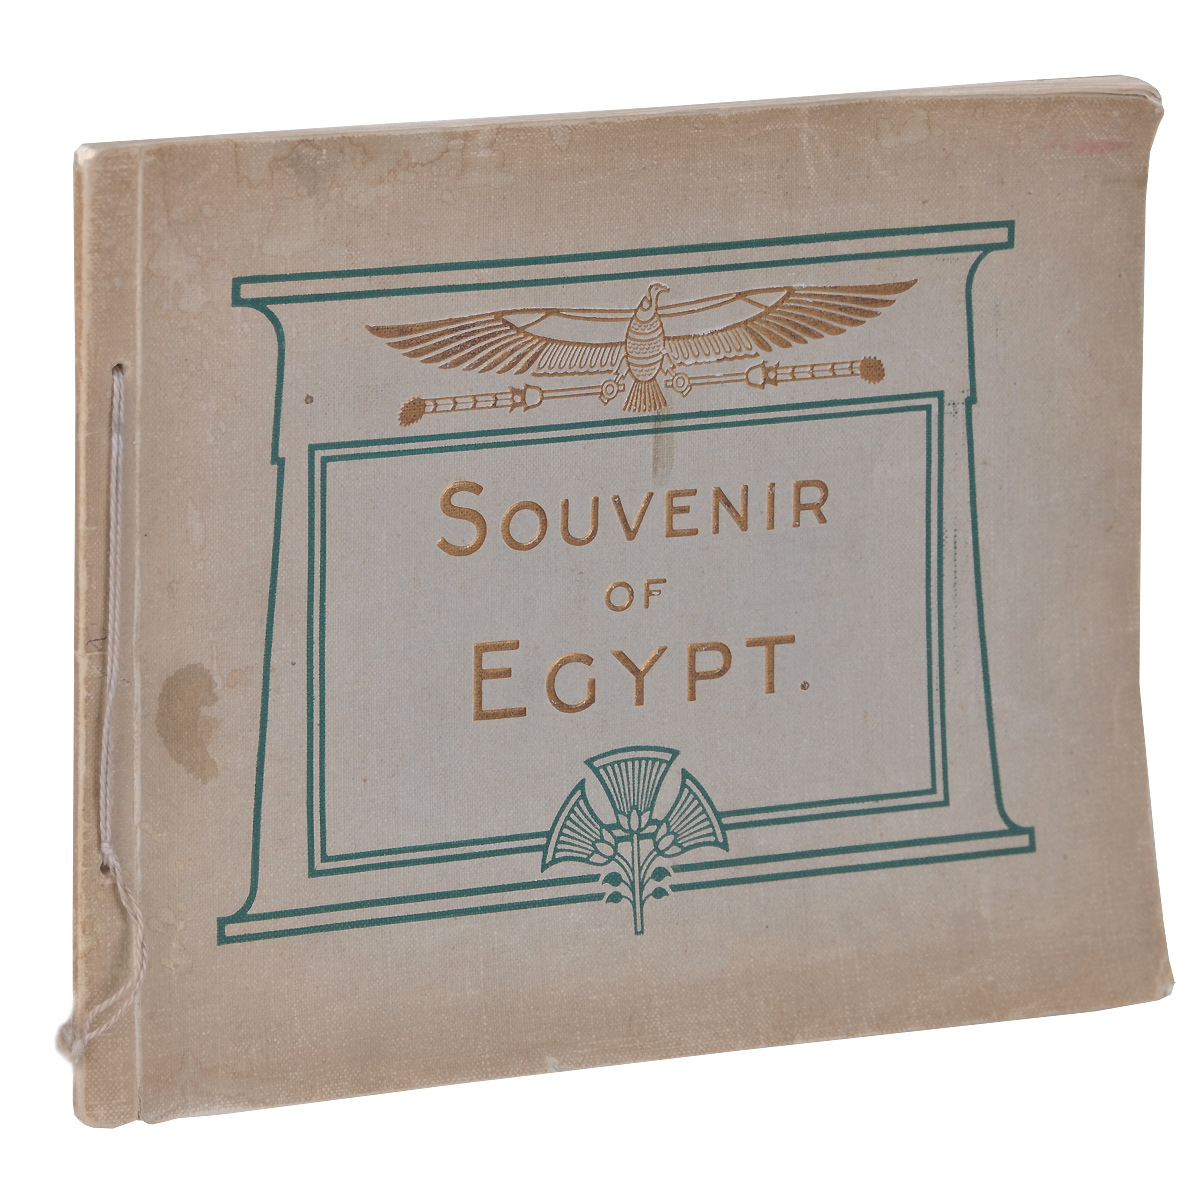 Souvenir of EgyptAM0012-2Лондон, 1920 год. Tillotson Press. Издательский переплет. Сохранена оригинальная обложка. Сохранность хорошая.Album Souvenir of Egypt contains 70 illustrations of Lower and Upper Egypt. Including all the principal views of places of interest on the Nile.Издание не подлежит вывозу за пределы Российской Федерации.